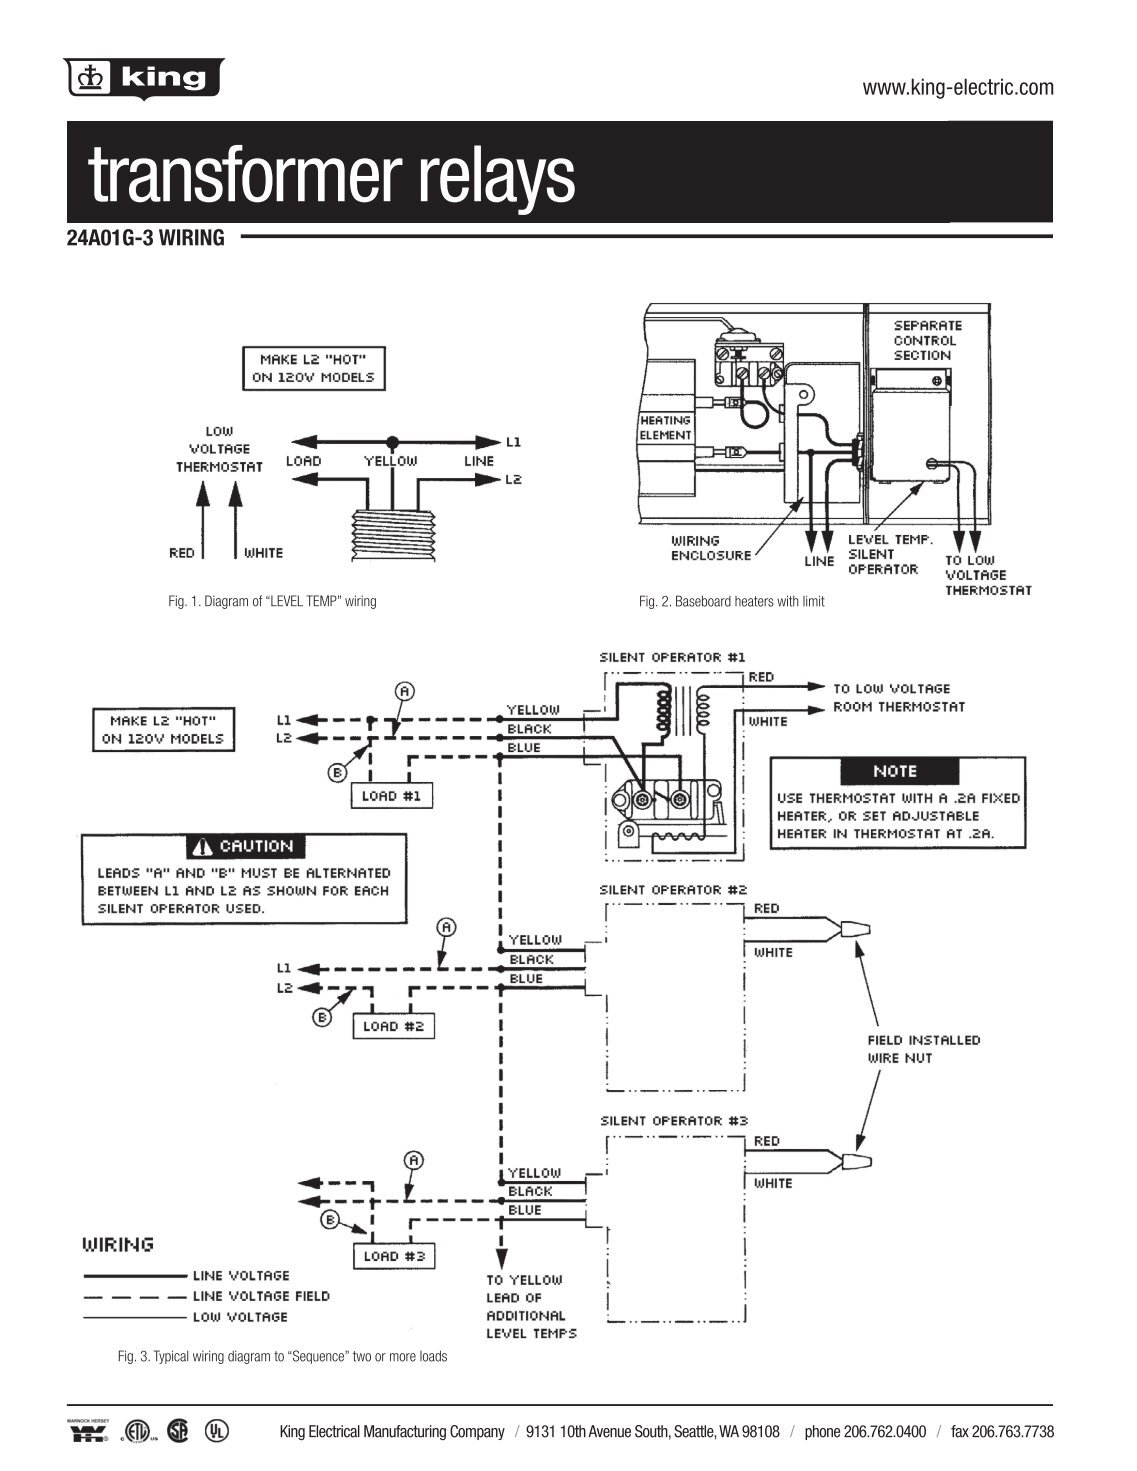 wiring diagram sistem pengapian jupiter z wiring diagram on motor diagrams switch diagrams wiring diagram kelistrikan  [ 1137 x 1471 Pixel ]